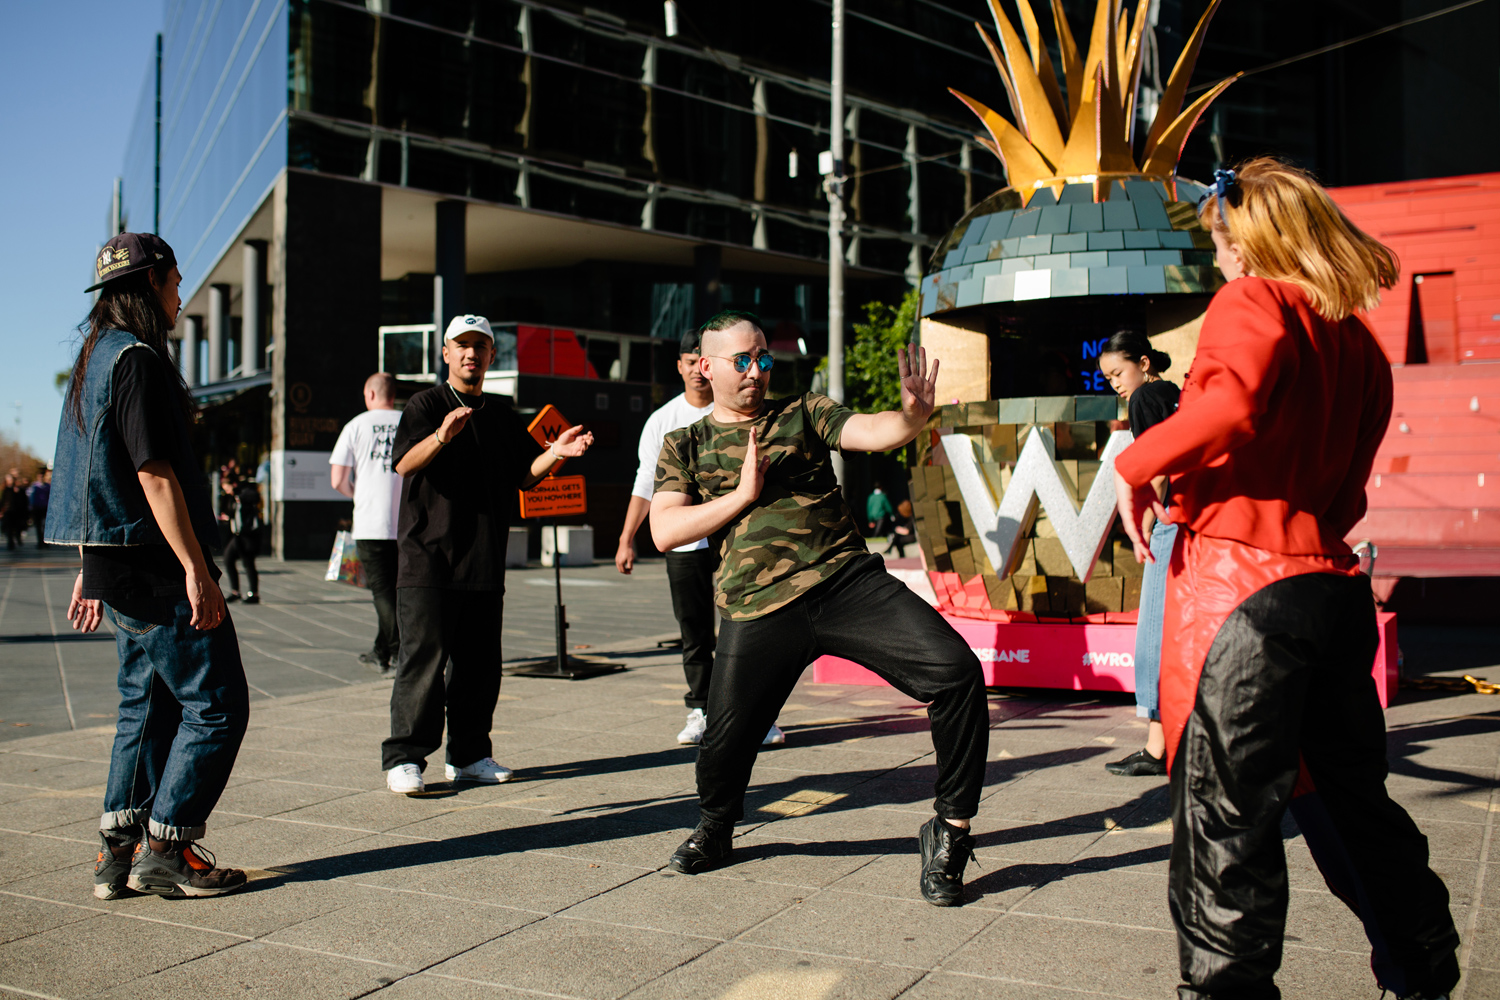 014-w-brisbane-activation.jpg